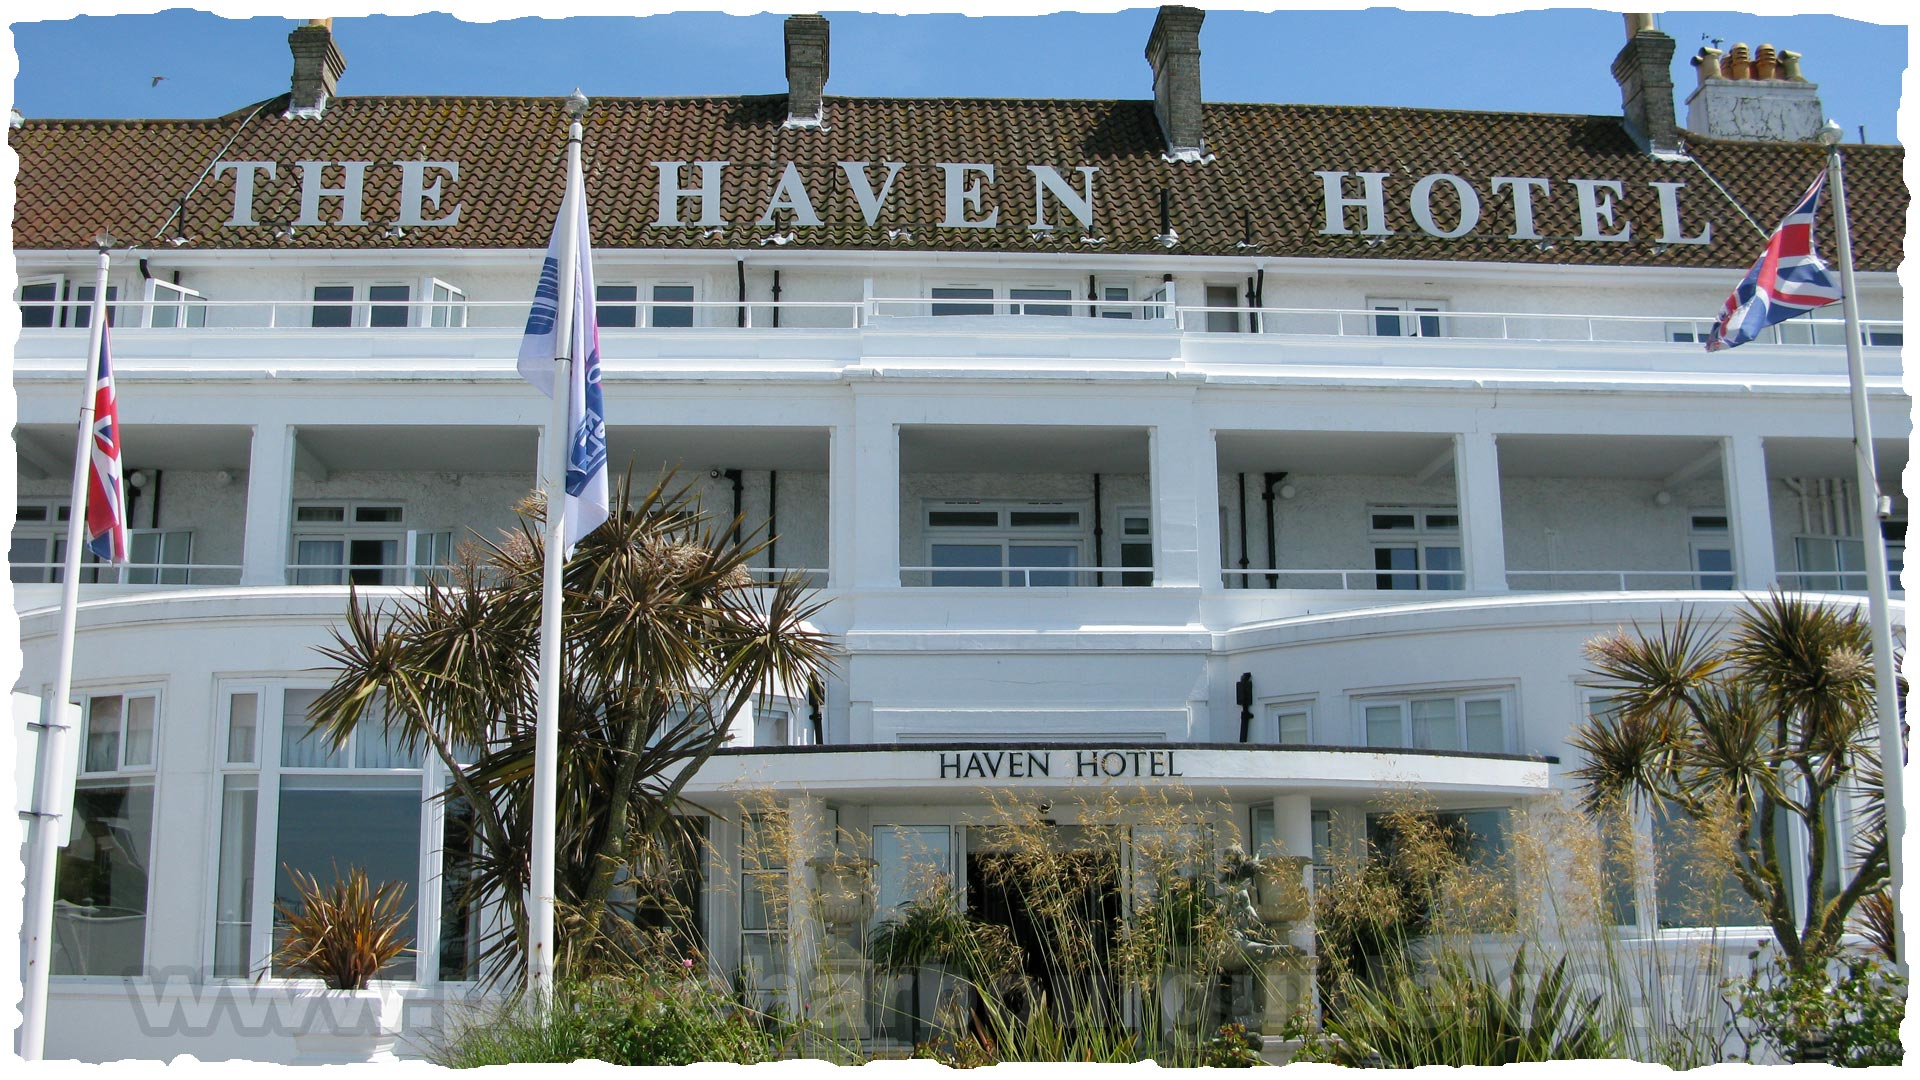 The Haven Hotel Poole